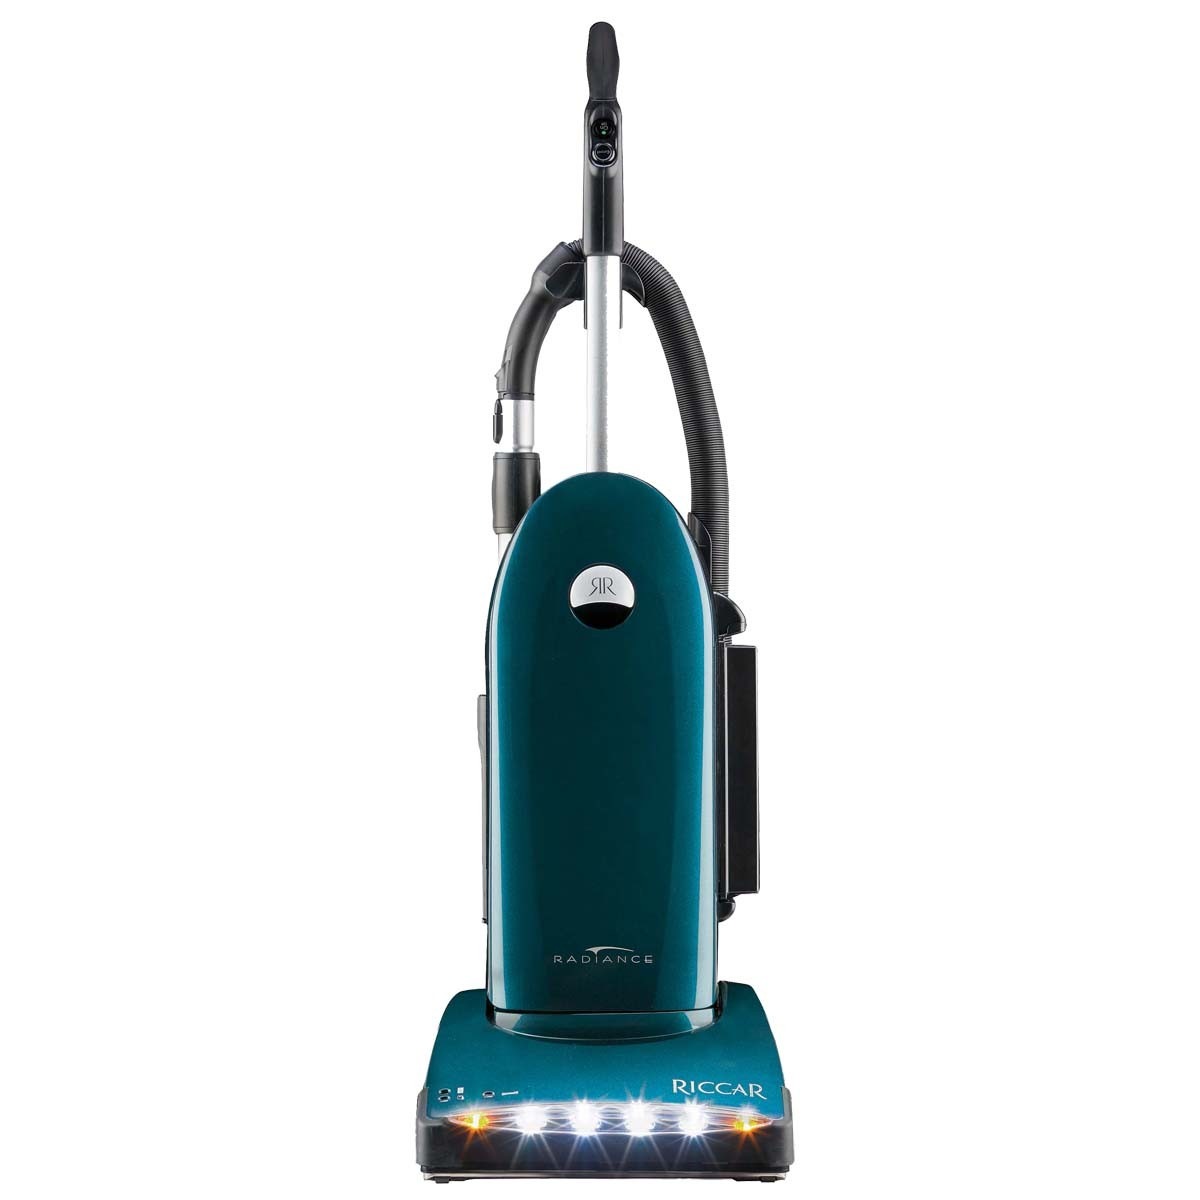 Riccar Radiance R40P  * 22.5 lbs  * Metallic dark teal  * onboard tools  * 40ft cord  * 8 year warranty  * 3 rows of replaceable brush strips